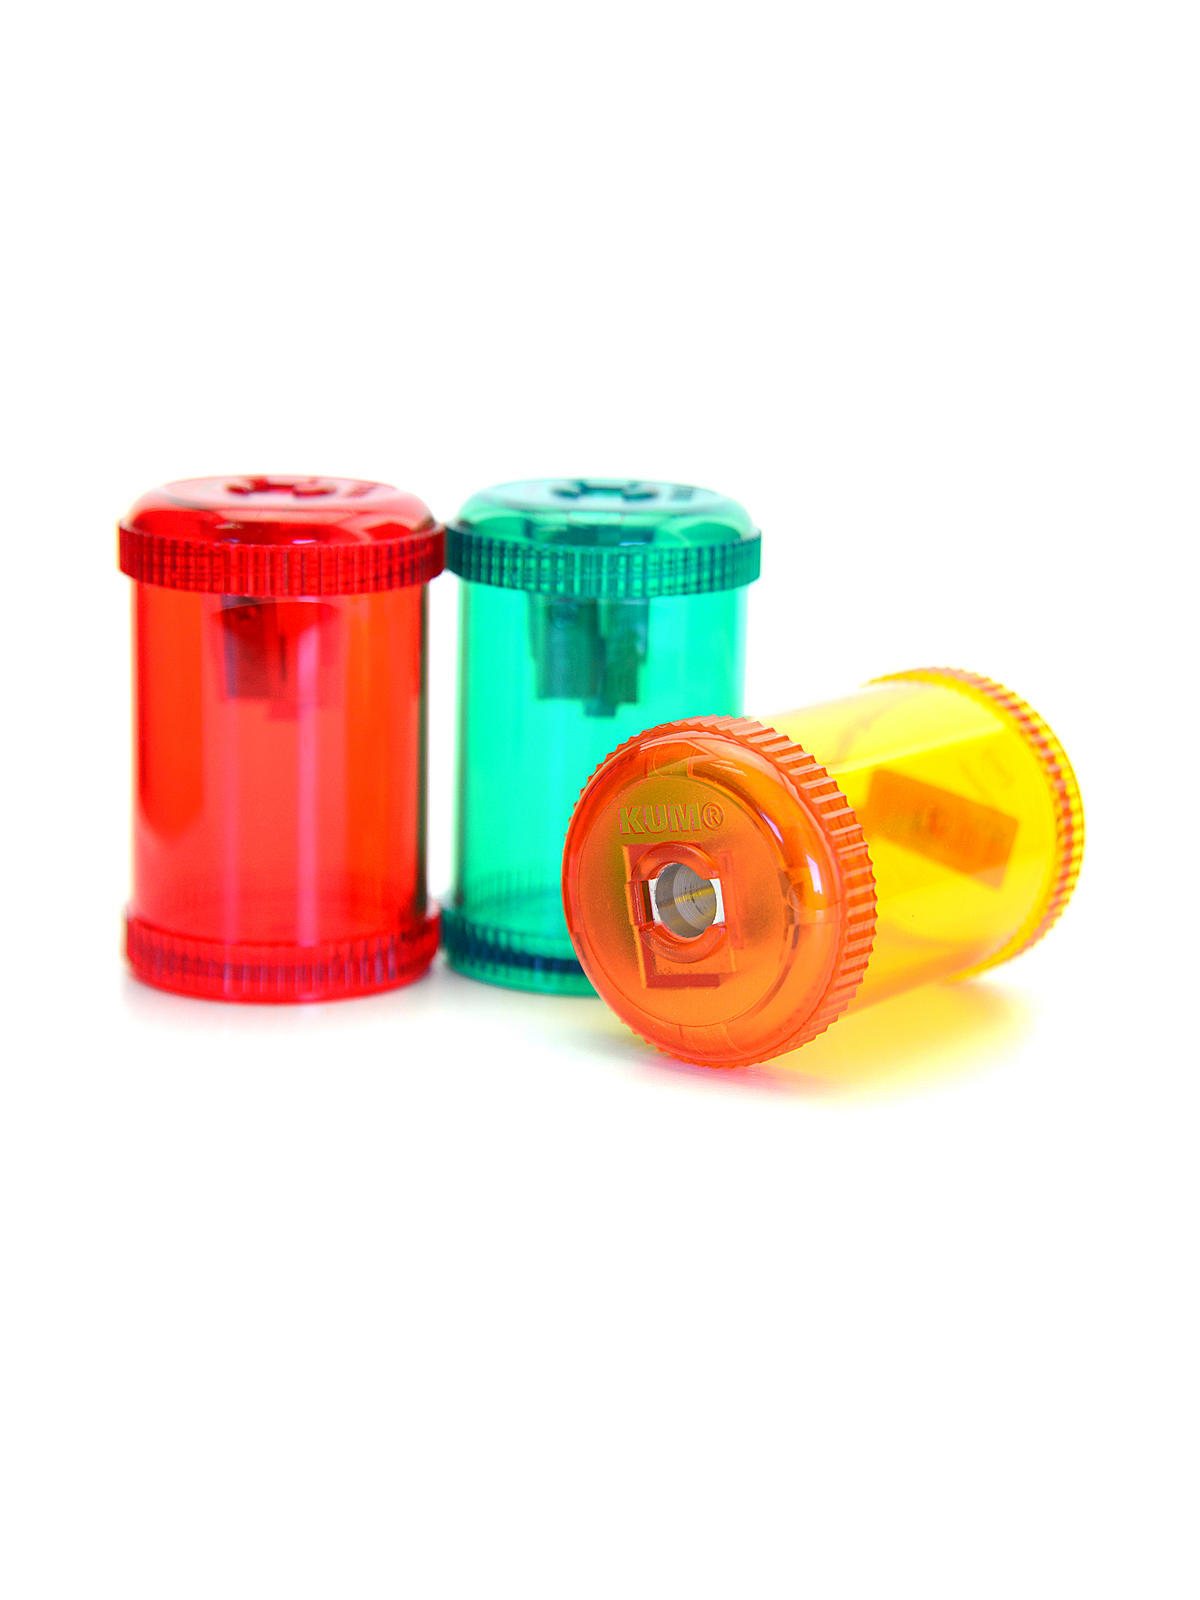 Barrel pencil sharpeners